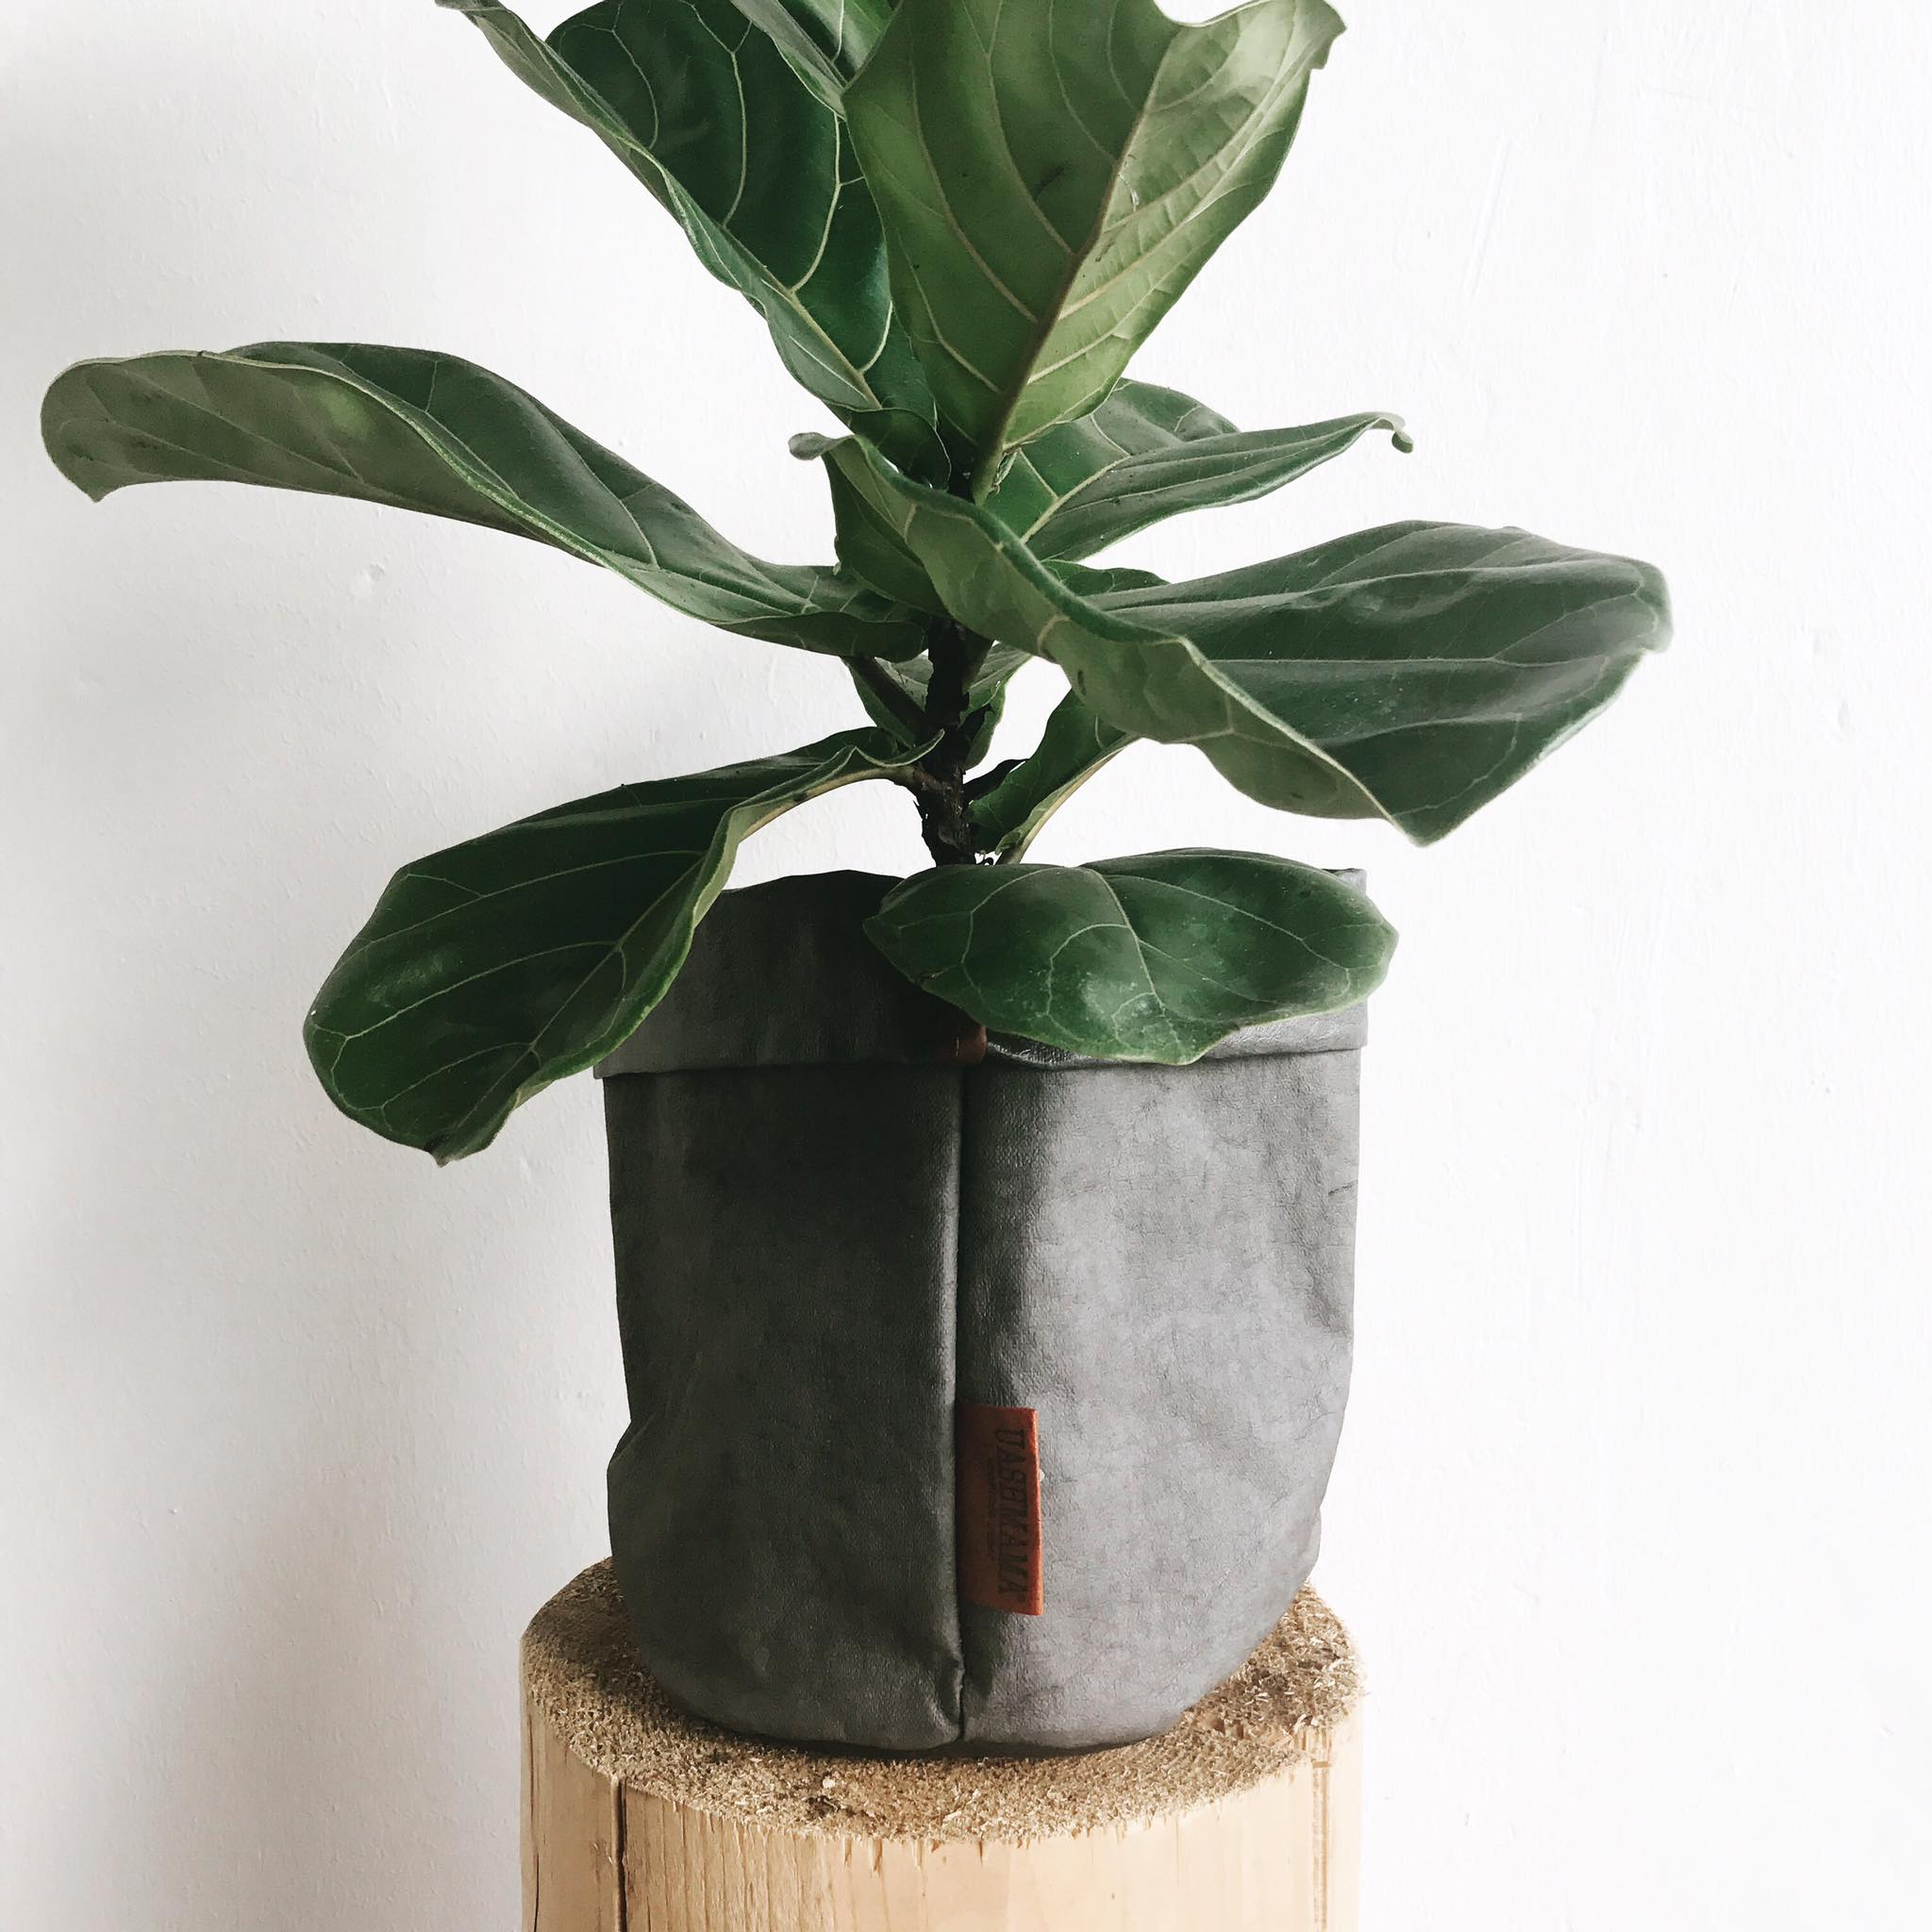 dwarf fig in paper container.jpg